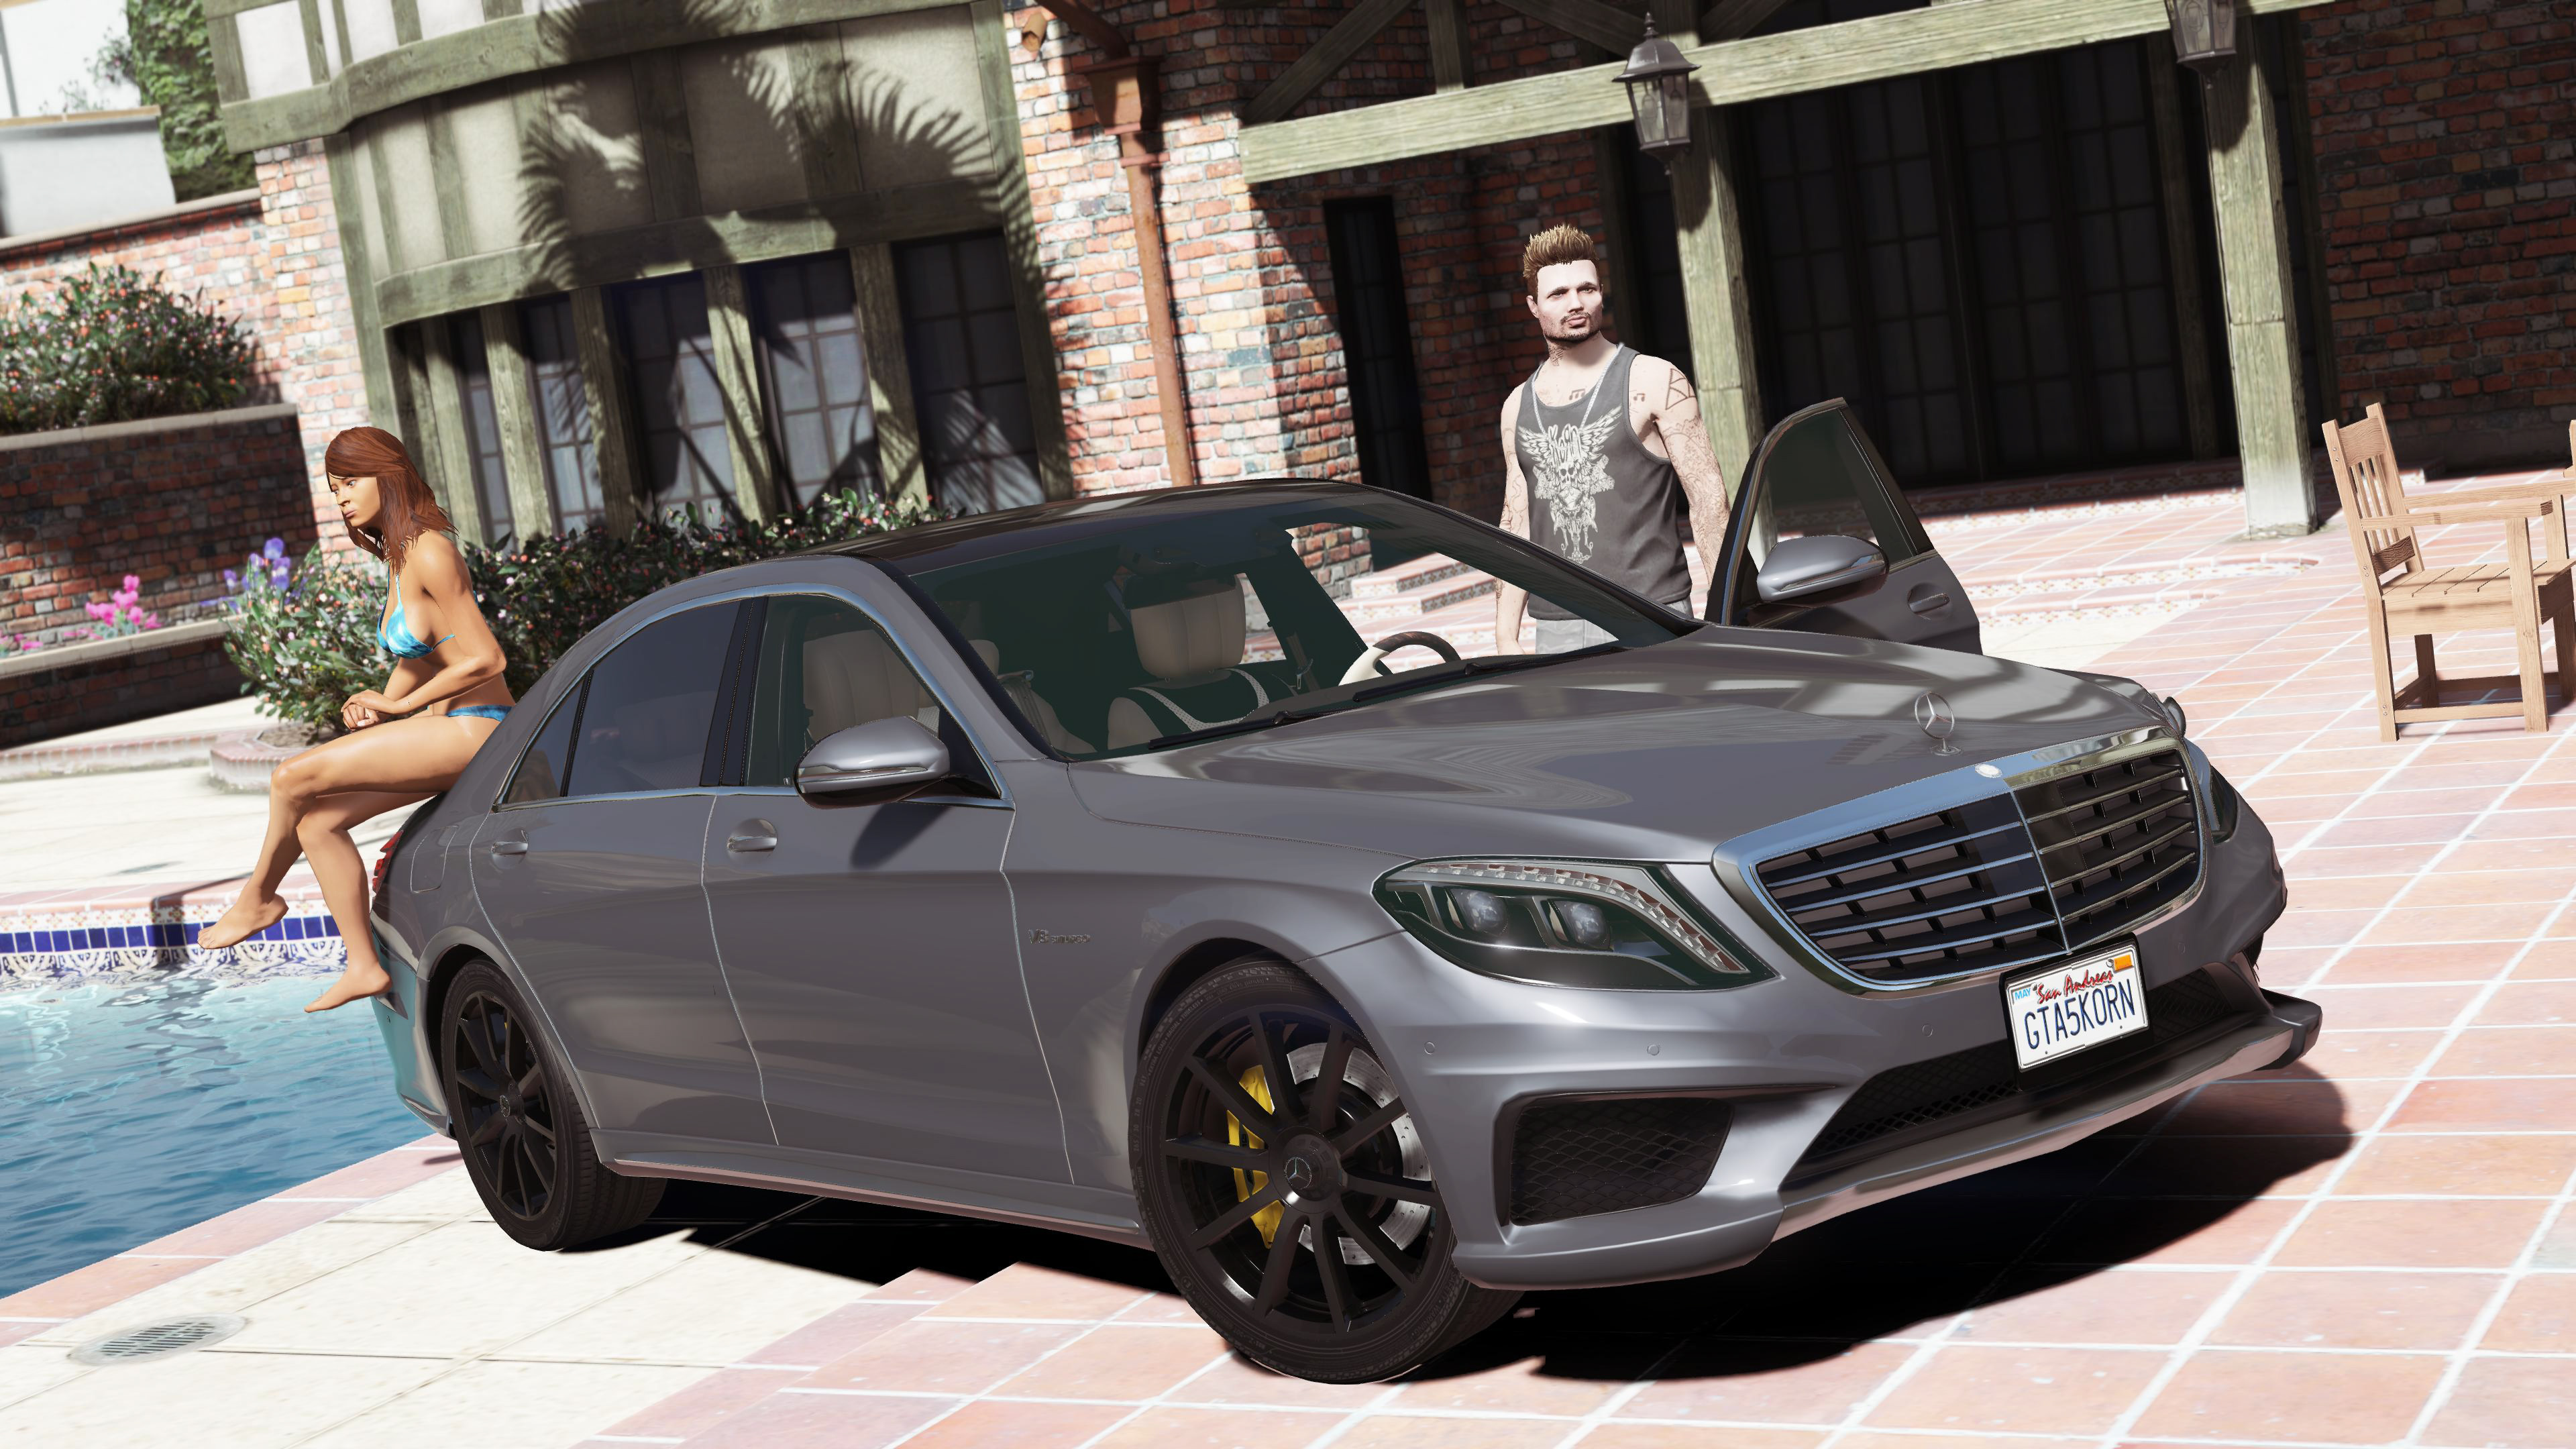 C63 Amg Coupe 2018 >> 2014 Mercedes-AMG S63 W222 [Add-On / Replace | Wipers] - GTA5-Mods.com